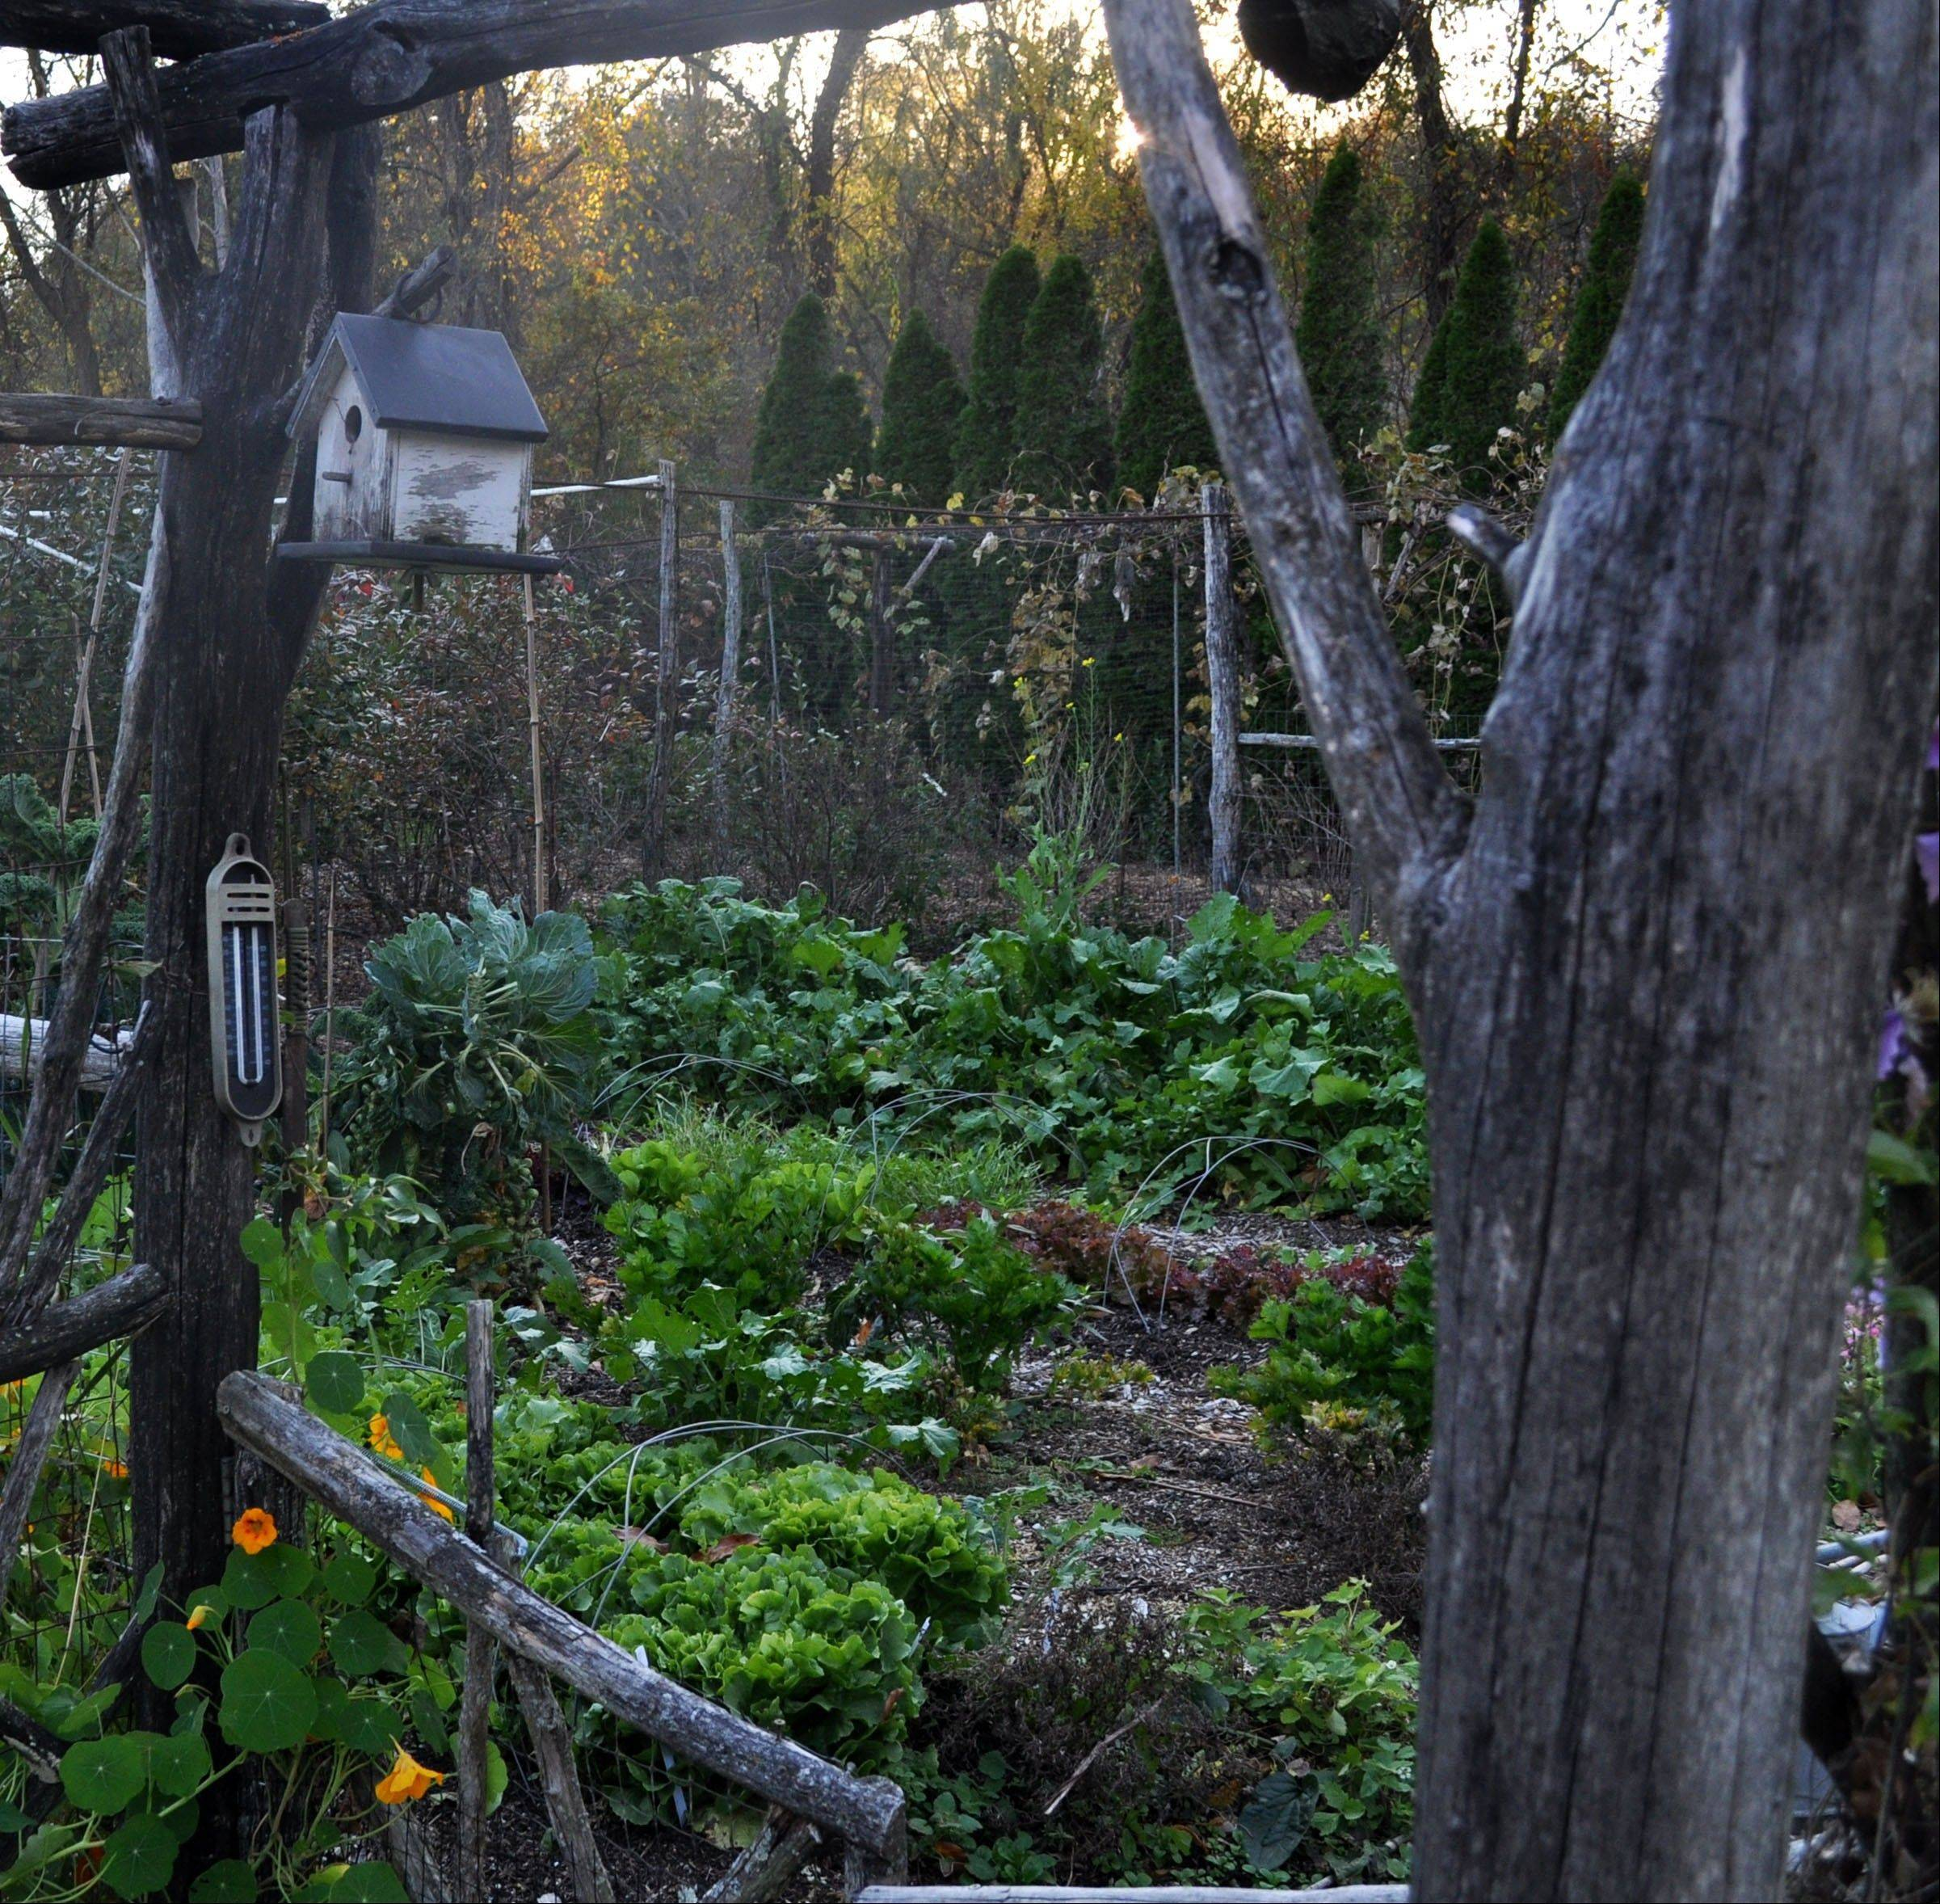 A vegetable garden for autumn can include endive, turnips, lettuce and Brussels sprouts. Just because summer's gone and there's frost in the air doesn't mean your garden has to be a scene of tawny colors and limp leaves.